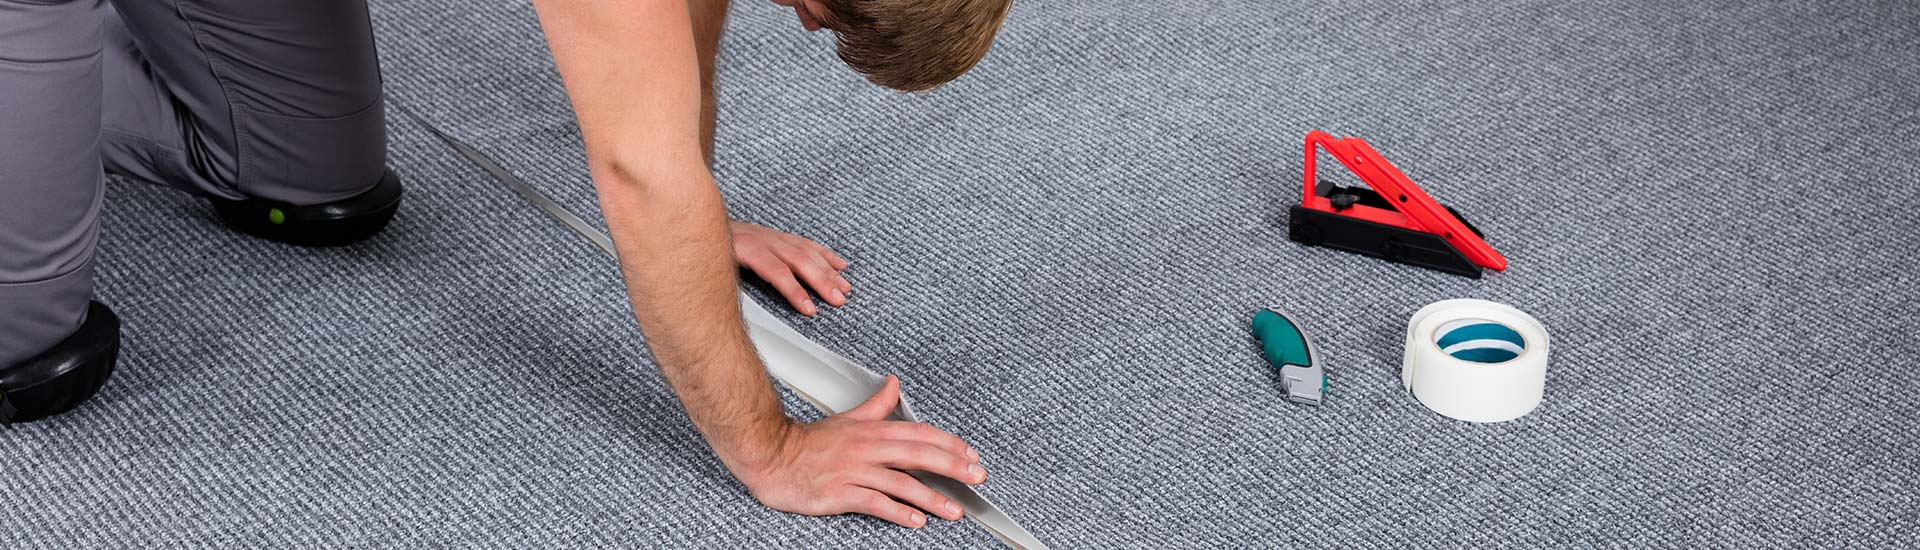 Carpet Repair Specialists